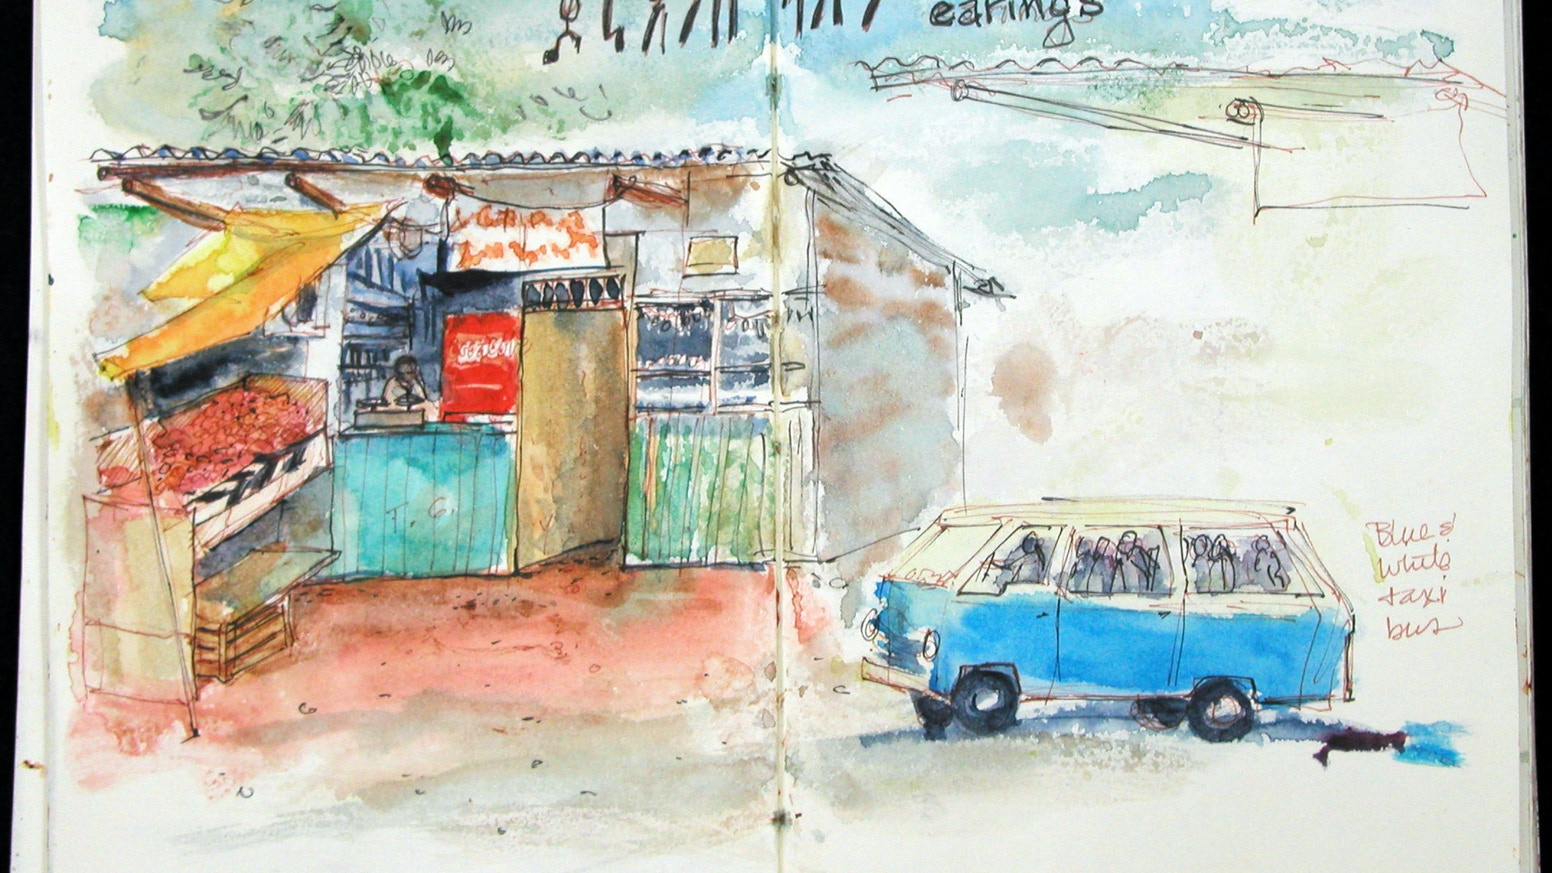 Mango Baskets & Rickshaw Blessings, a travel journal book by